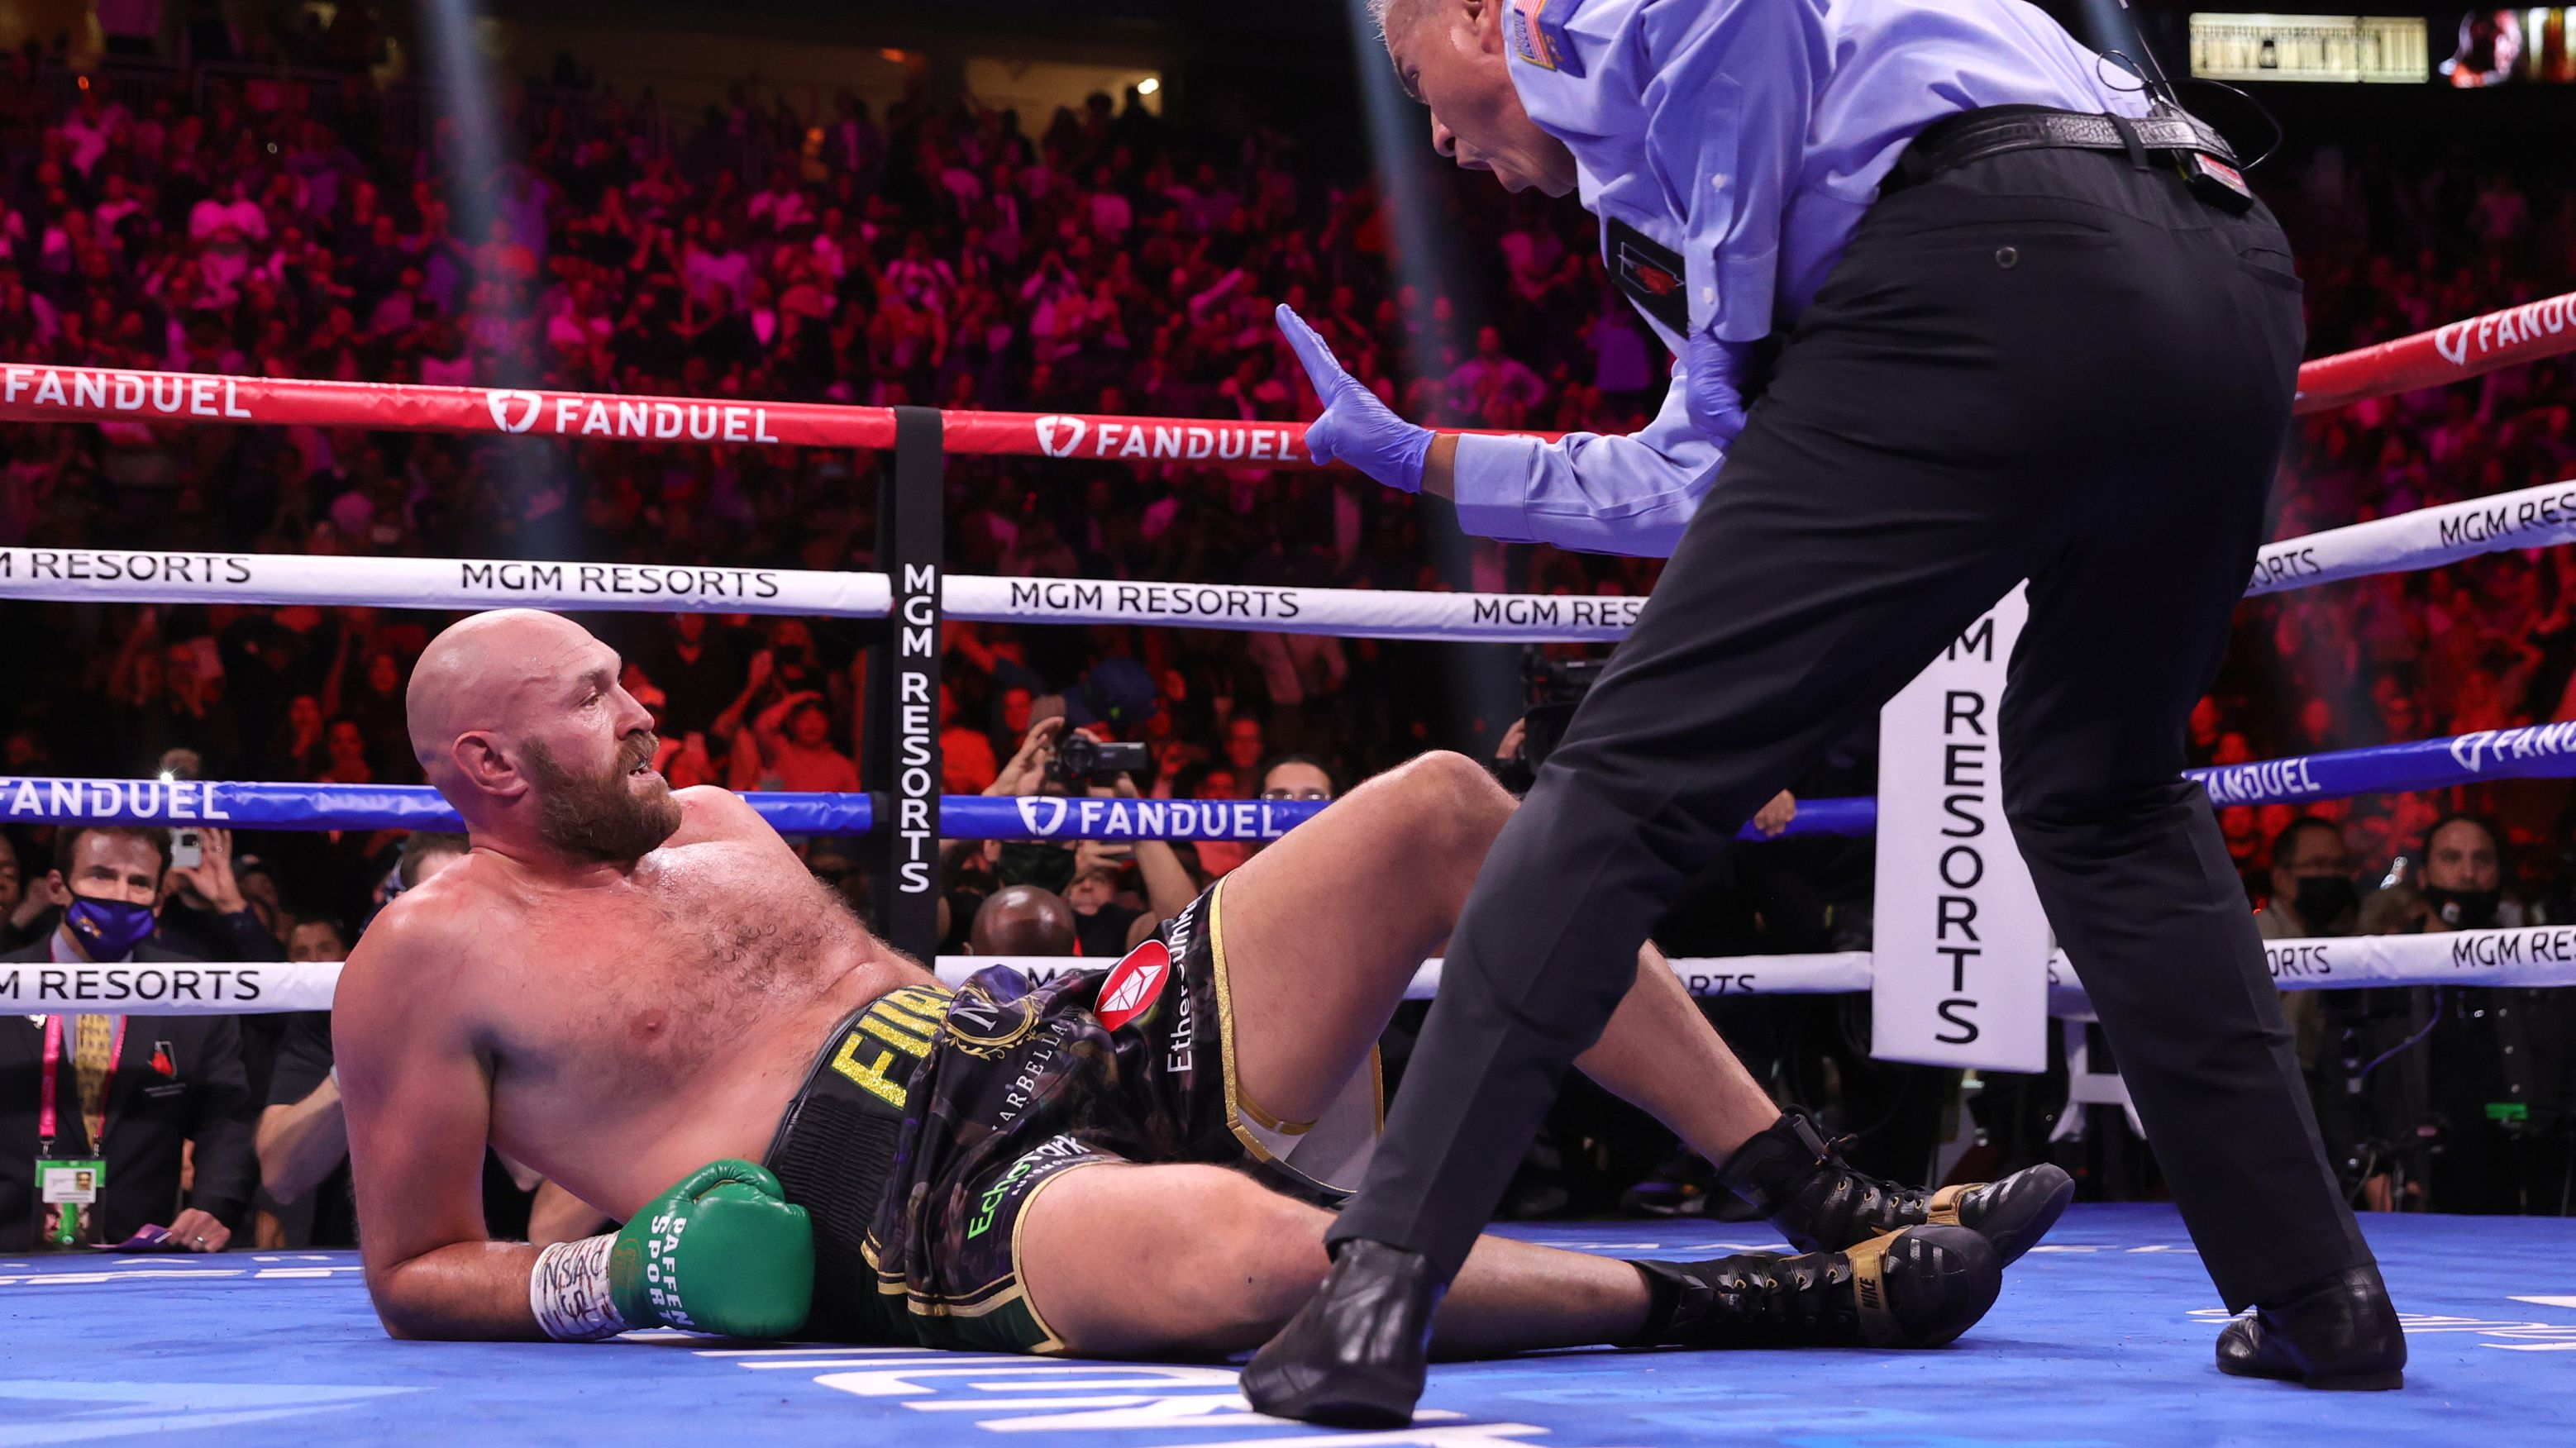 This is the moment some people reckon Tyson Fury should have lost the fight to Deontay Wilder.